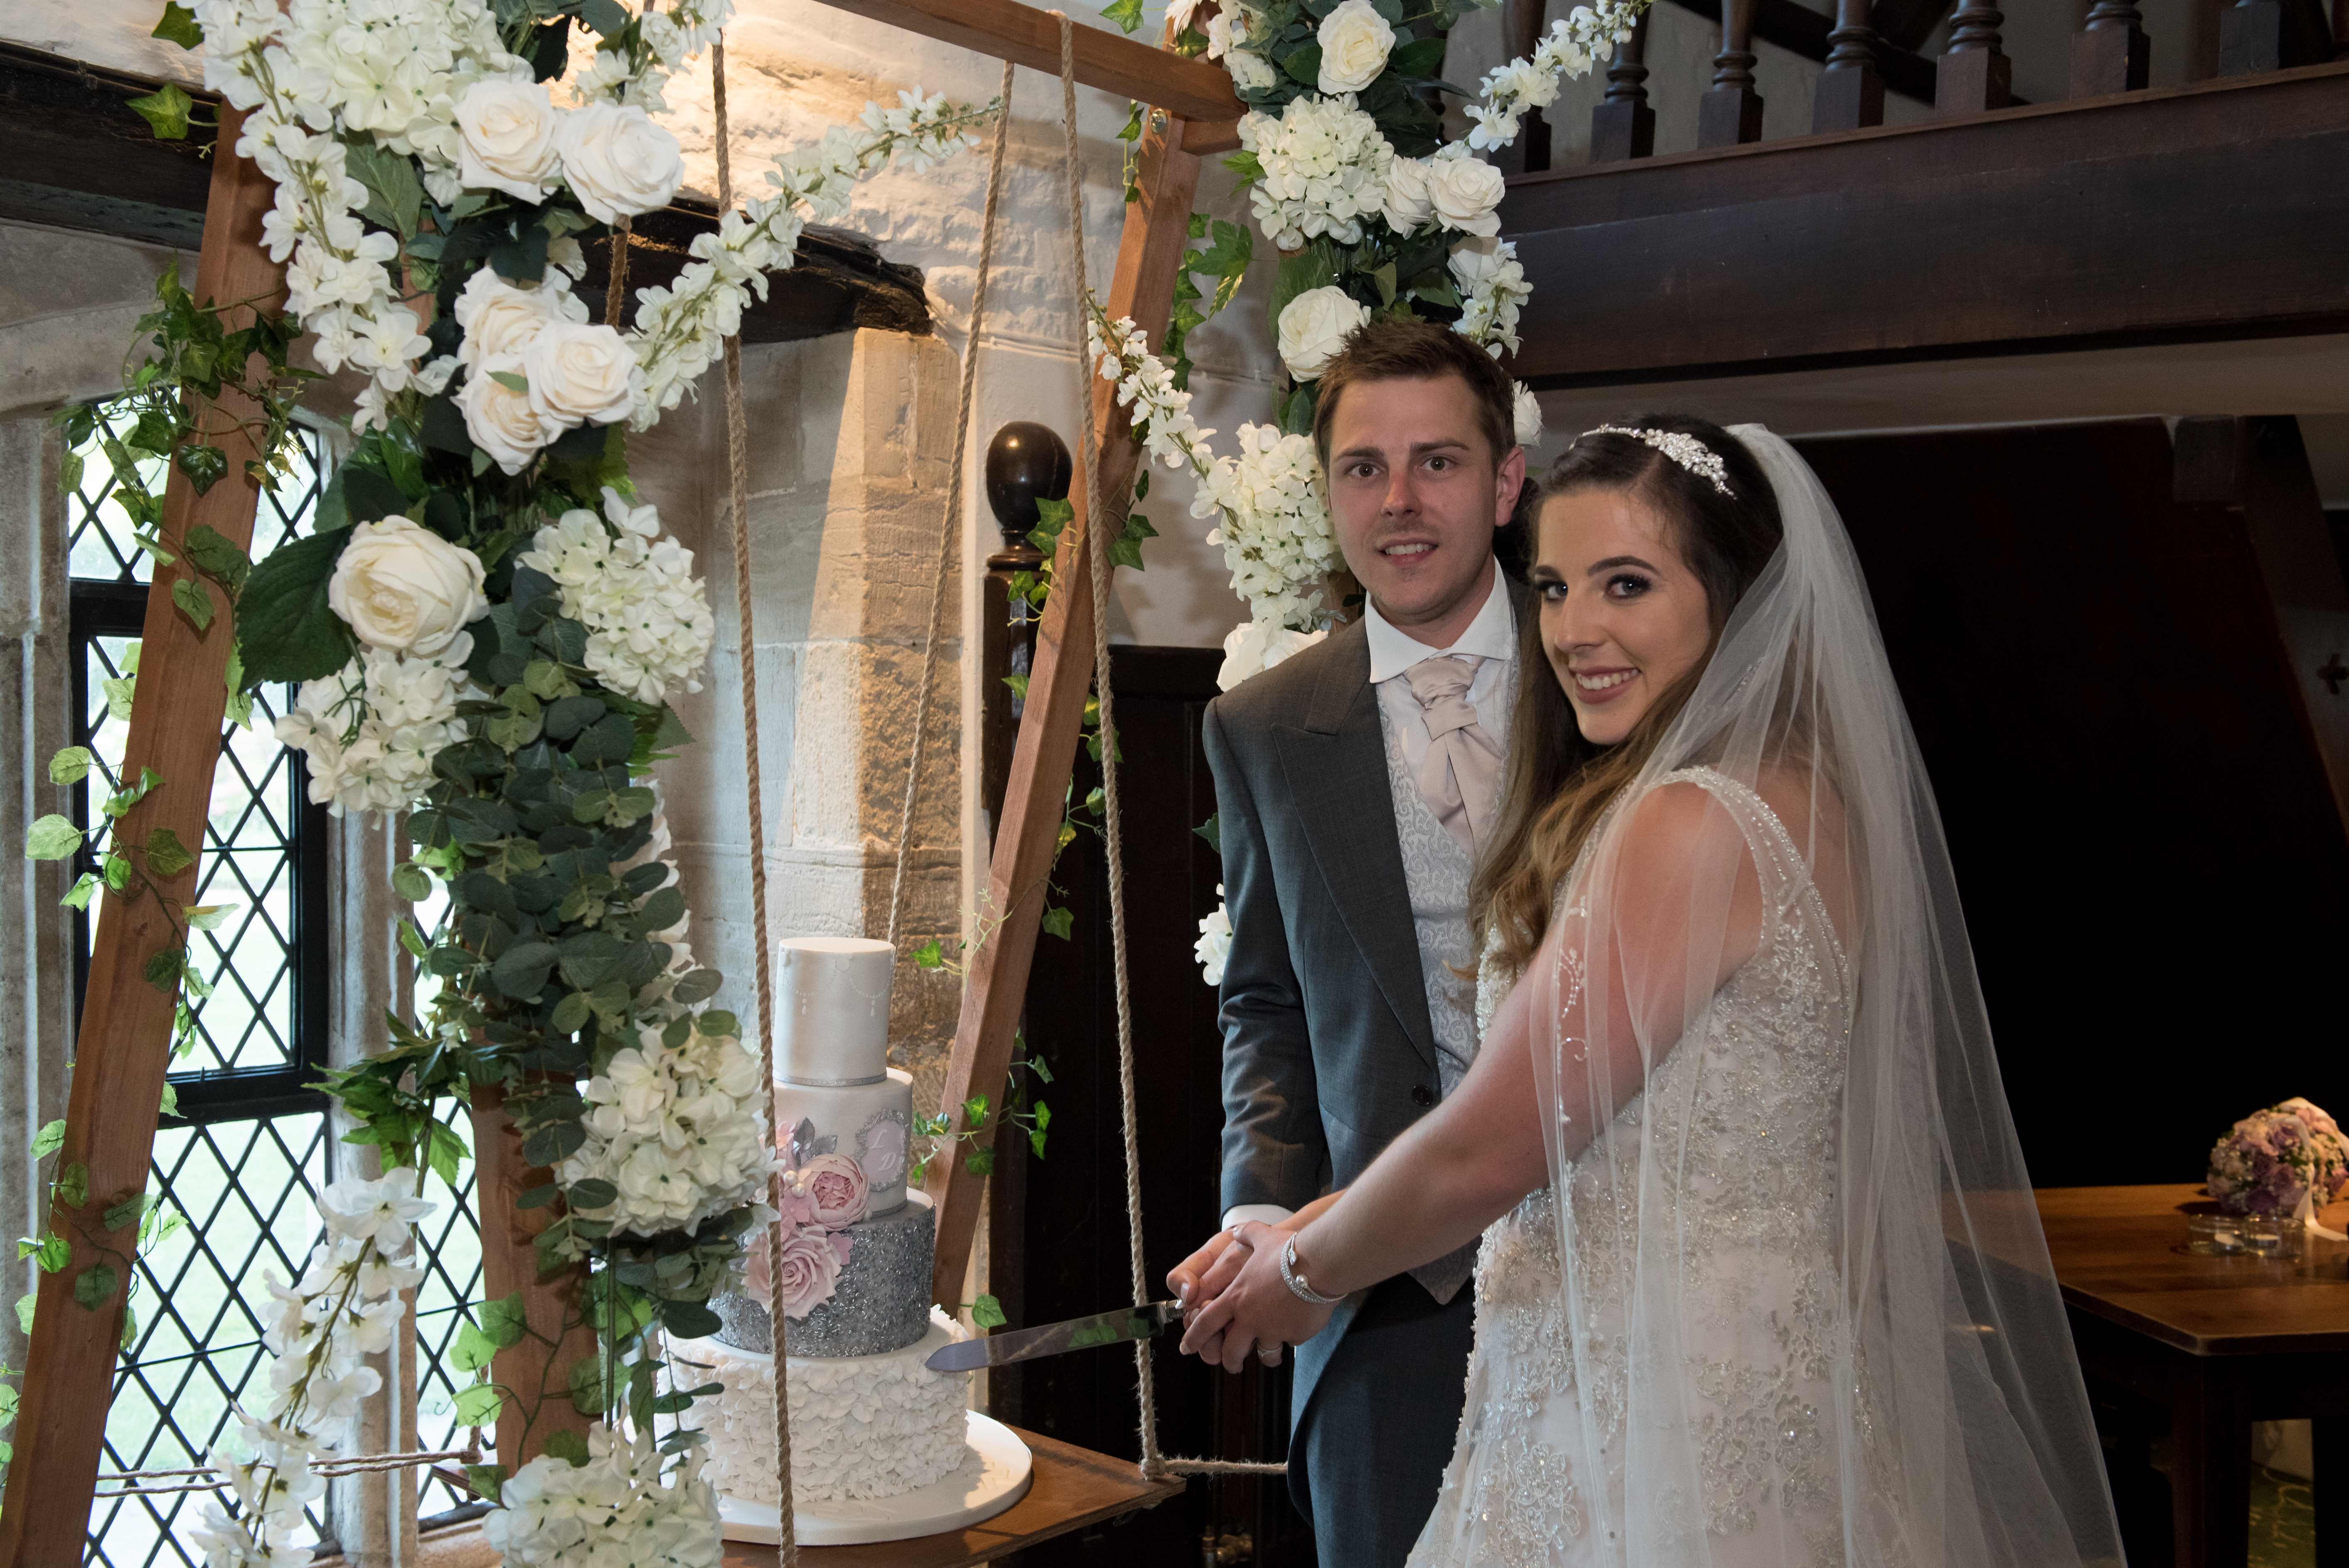 Bride and Groom Cutting the Wedding Cake in the Long Hall at Athelhampton